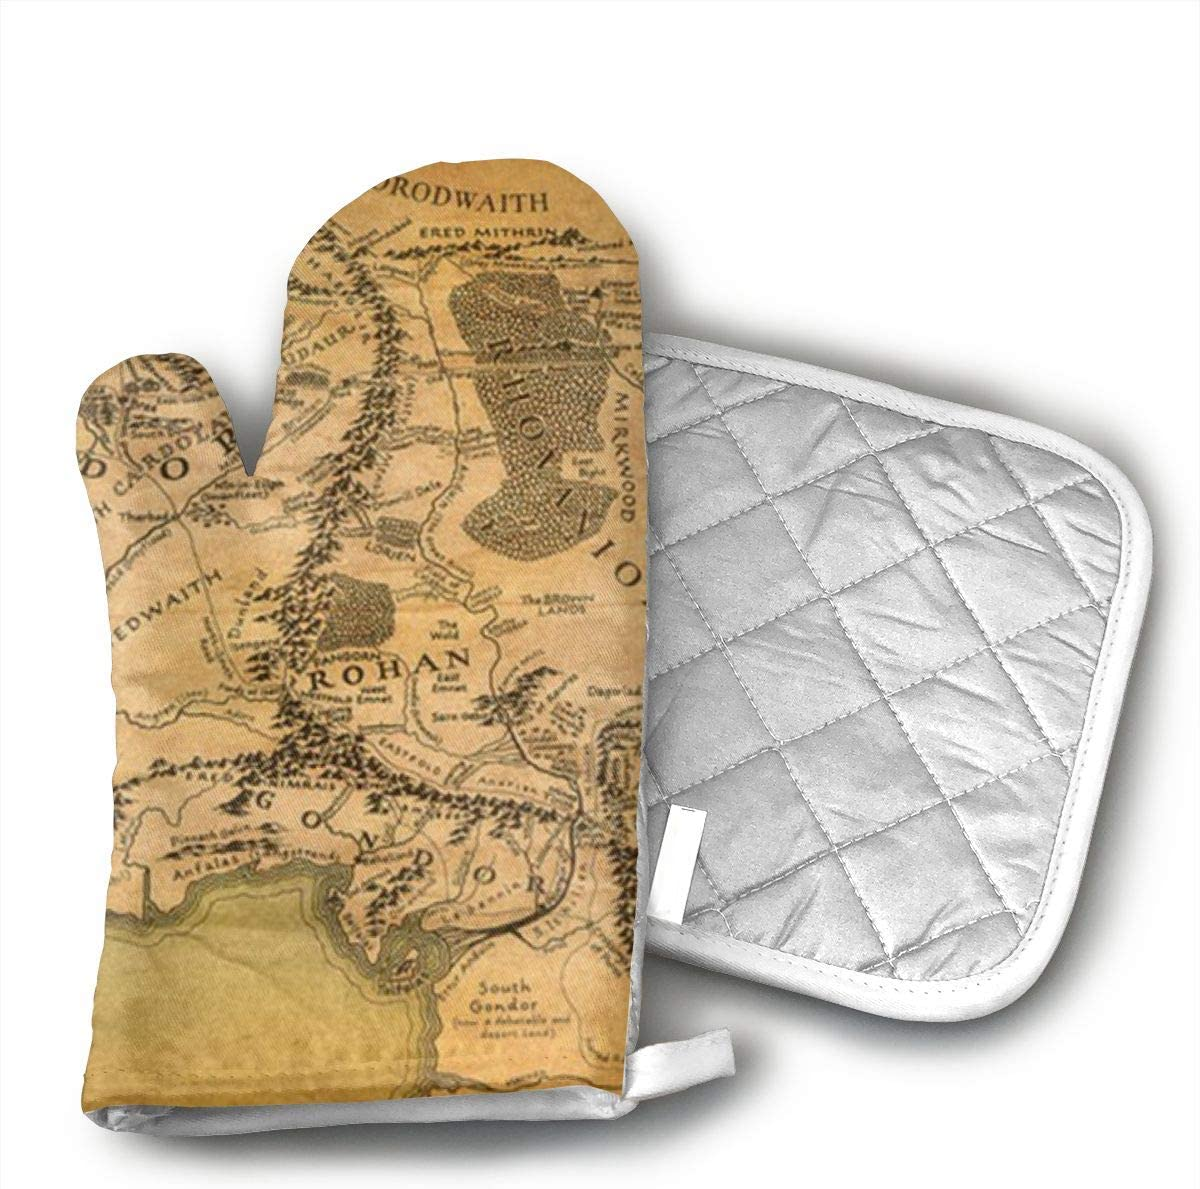 Lord of The Rings Map Oven Mitts and Potholders (2-Piece Sets) - Kitchen Set with Cotton Heat Resistant,Oven Gloves for BBQ Cooking Baking Grilling